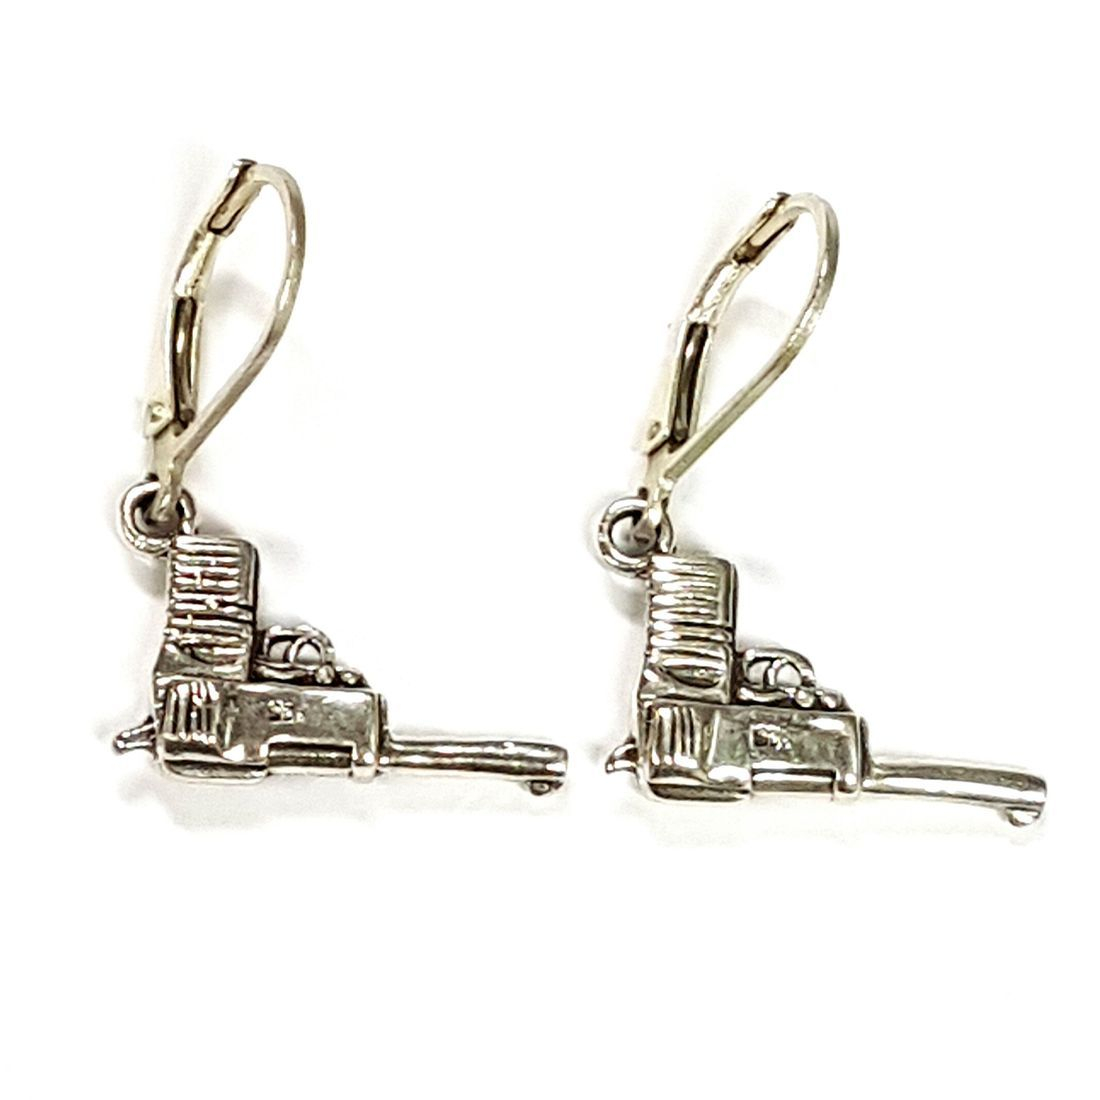 Sterling Silver Gun Earrings   available at Kazbah online and our Leicester City Centre Shop